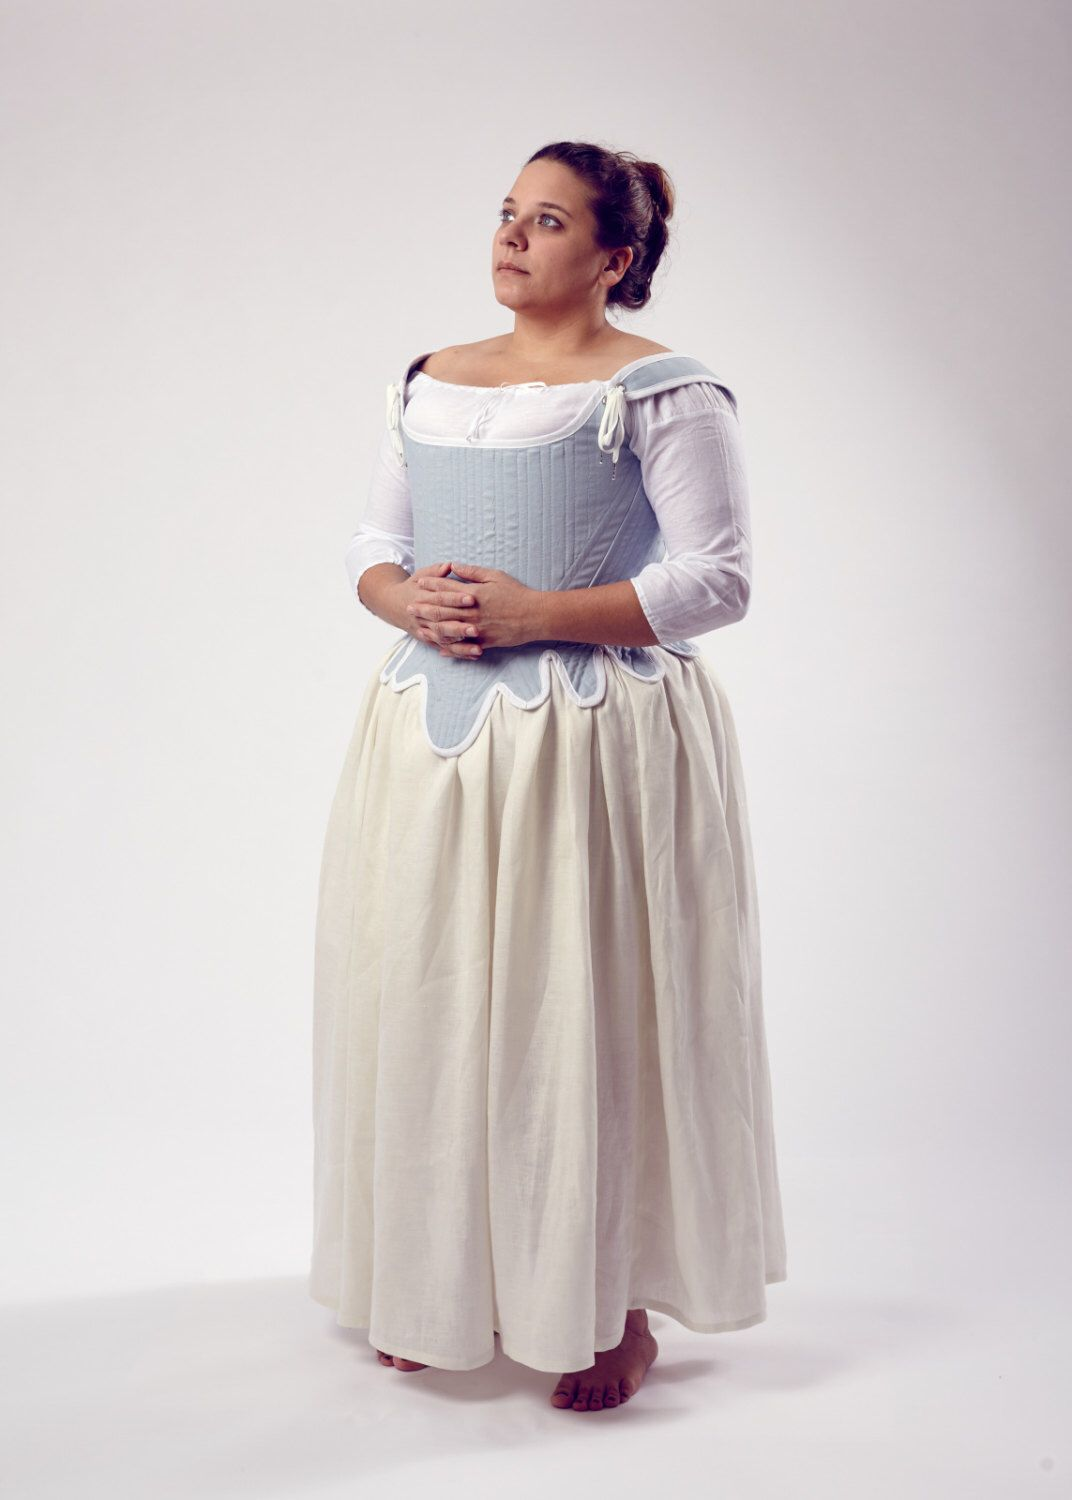 Custom Order Colonial 1770s Diderot Corset Upon Request by historicaldesigns on Etsy https://www.etsy.com/listing/176432369/custom-order-colonial-1770s-diderot